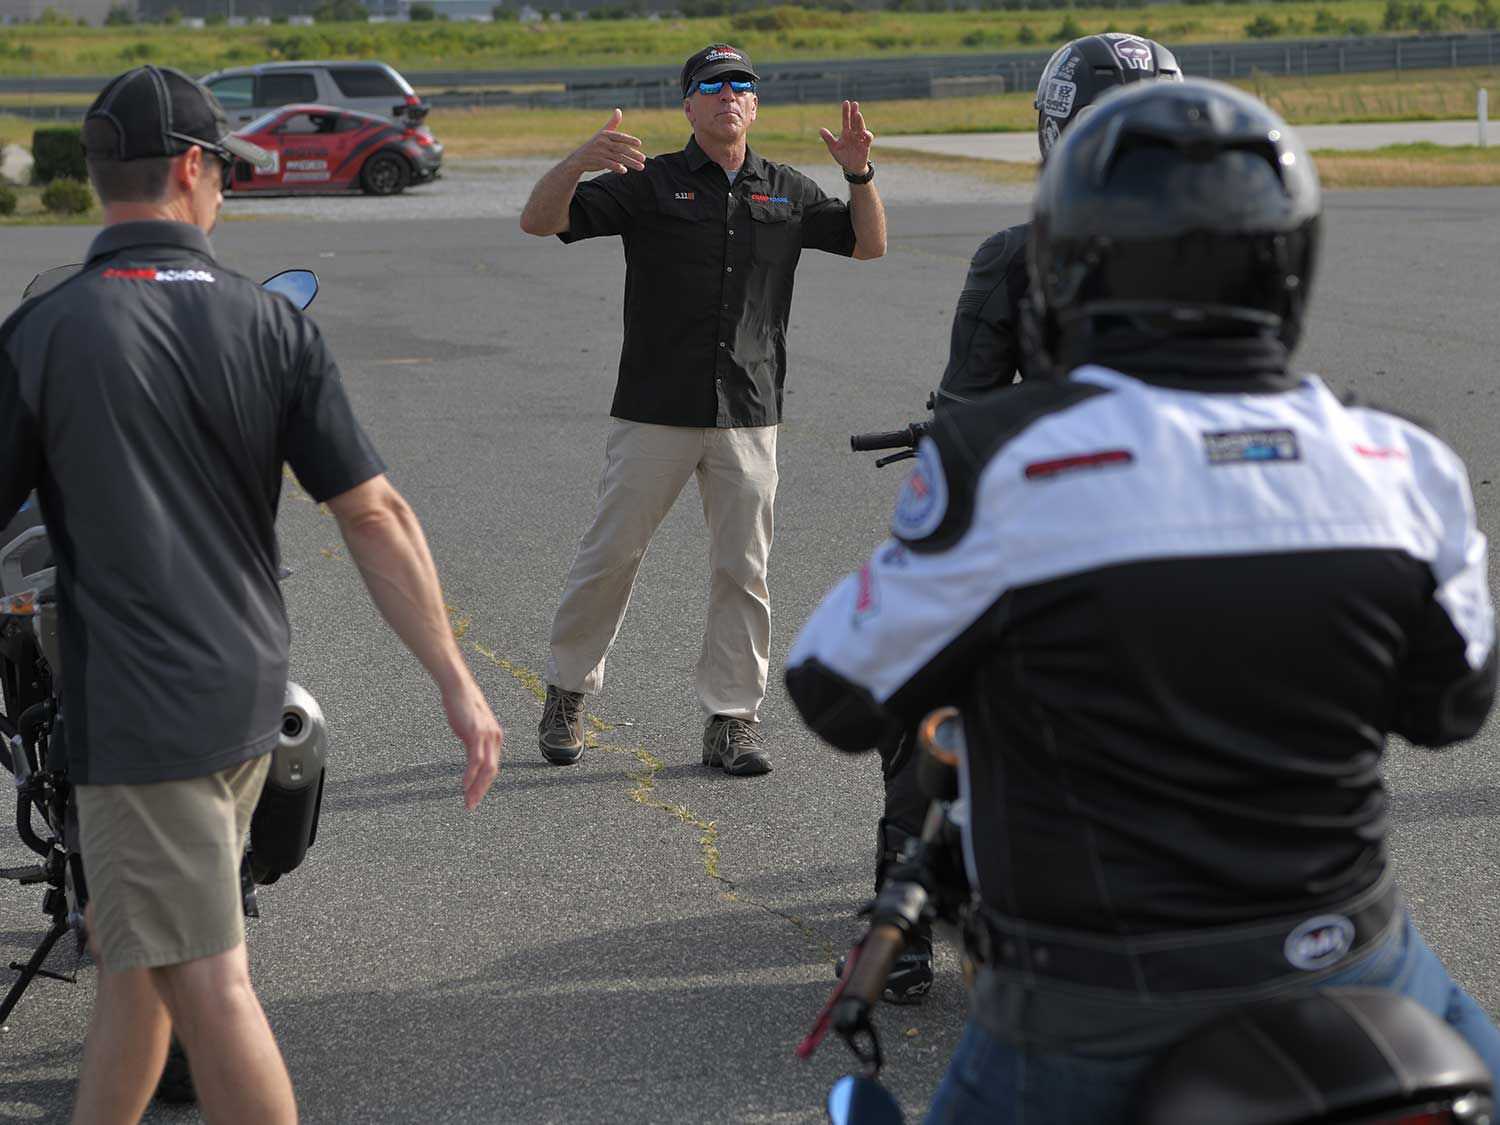 Ienatsch talking with riders during ChampStreet, a one-day class focused on getting street riders comfortable with correct riding techniques.